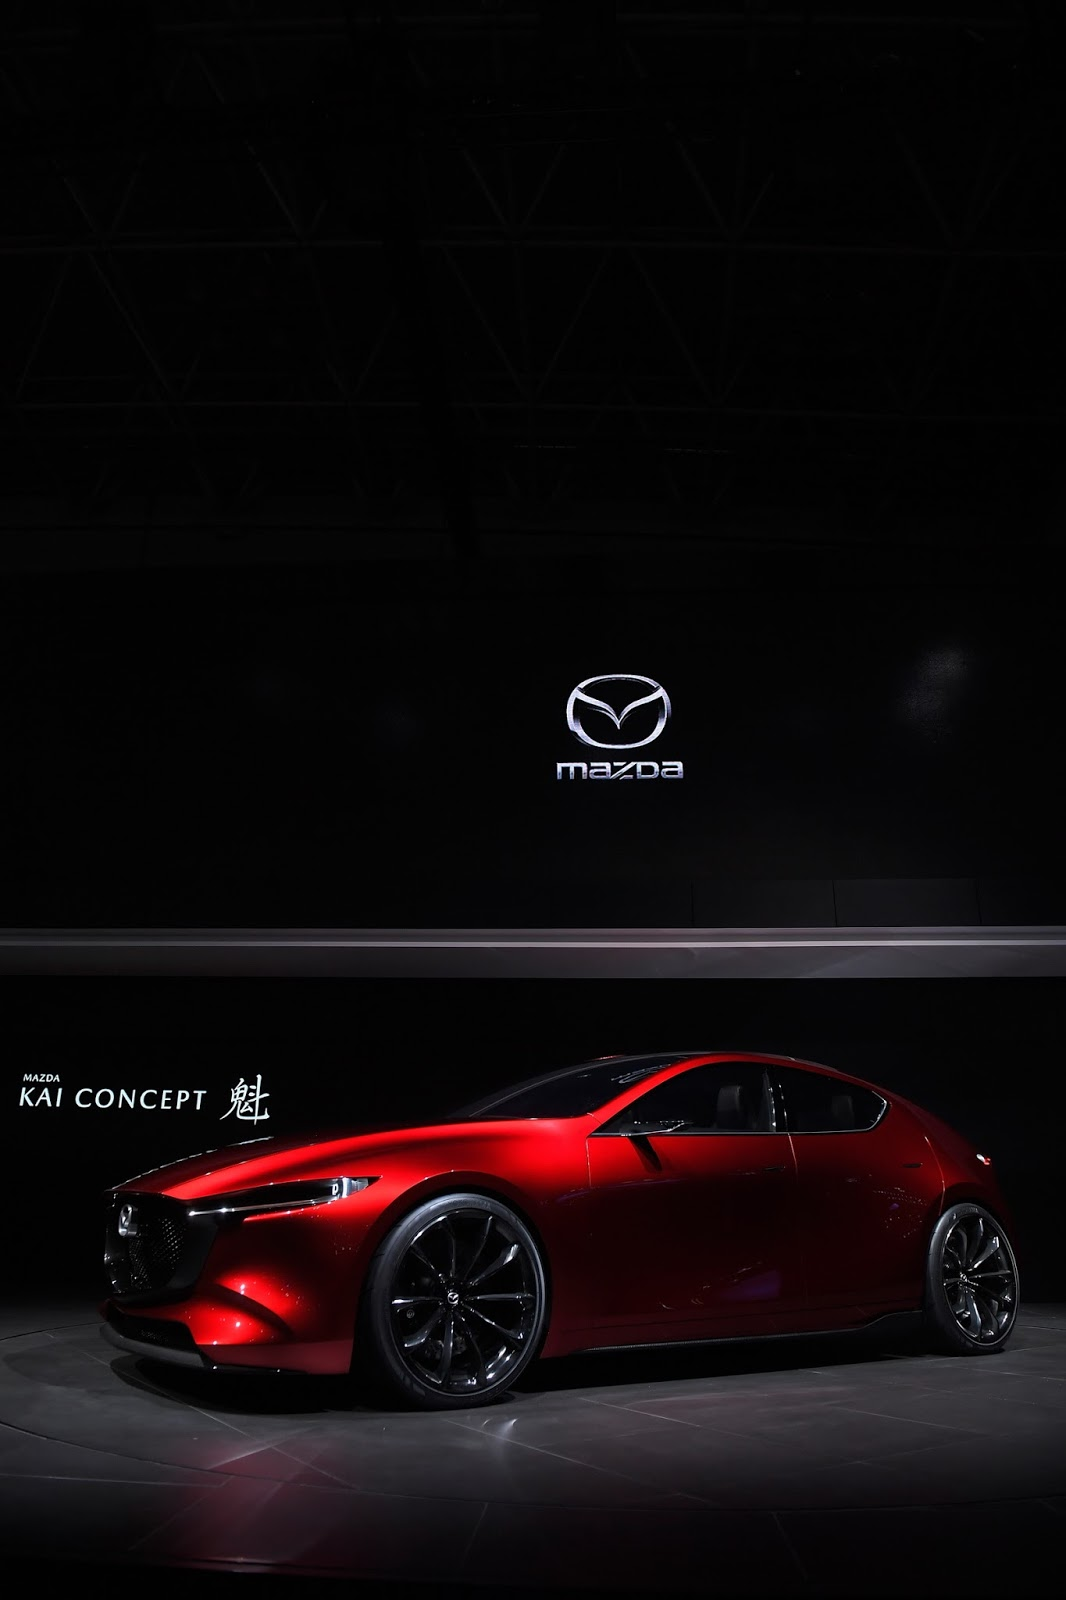 TOKYO, JAPAN - OCTOBER 25:  Mazda Kai Concept is unveiled at the Mazda Motor Co booth during the Tokyo Motor Show at Tokyo Big Sight on October 25, 2017 in Tokyo, Japan.  (Photo by Koki Nagahama/Getty Images for Mazda Motor Co)